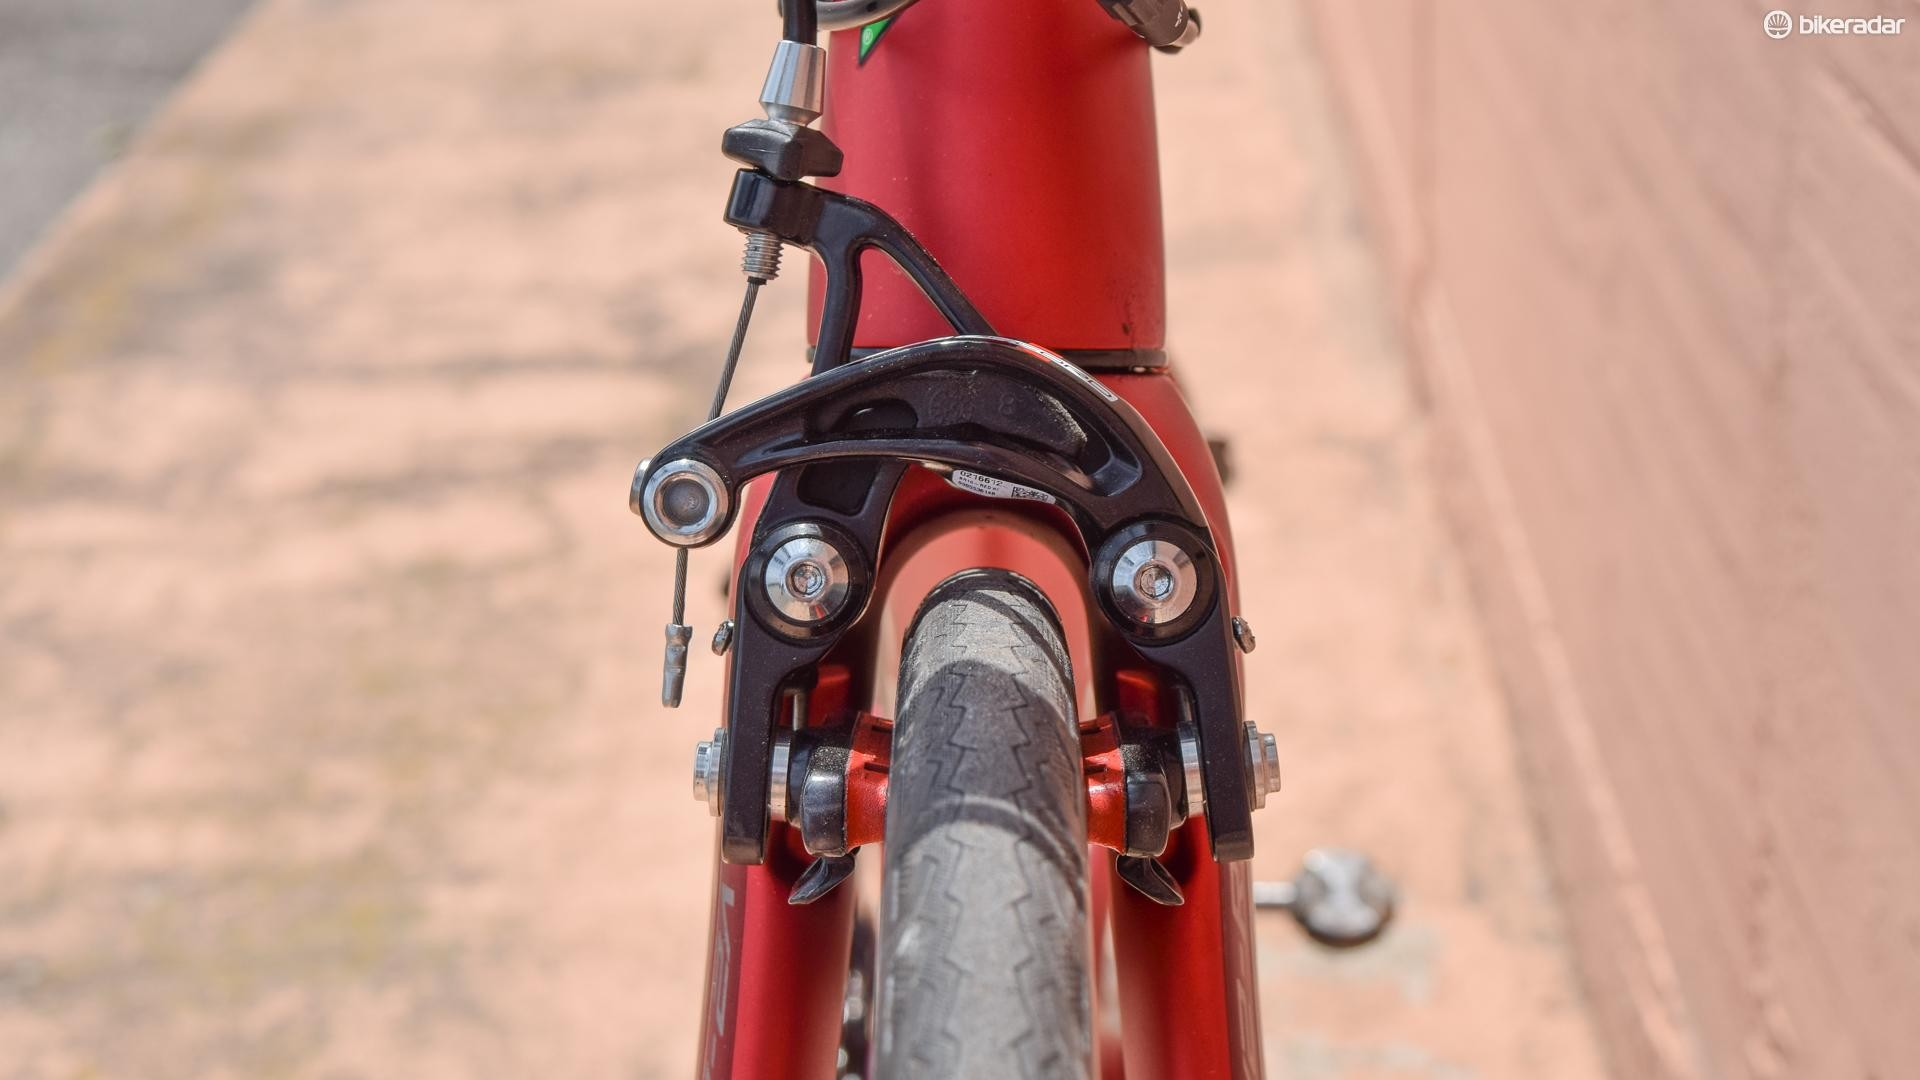 Direct mount brakes mean lots of power and clearance for at least 28mm tyres